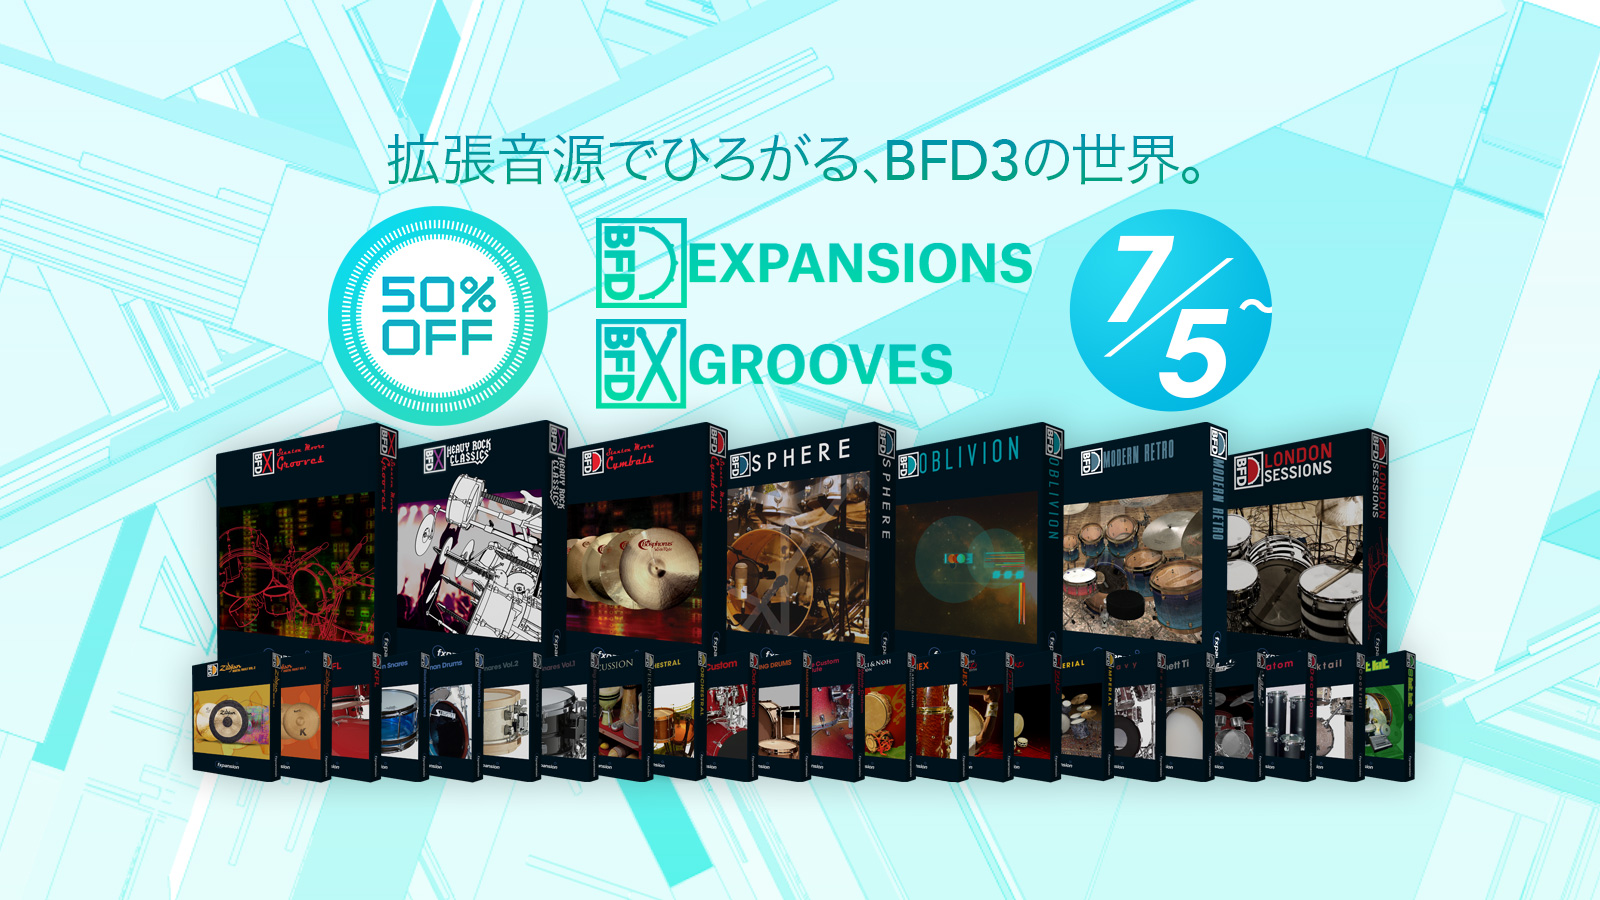 BFD Expansions All 50% OFF Sale!